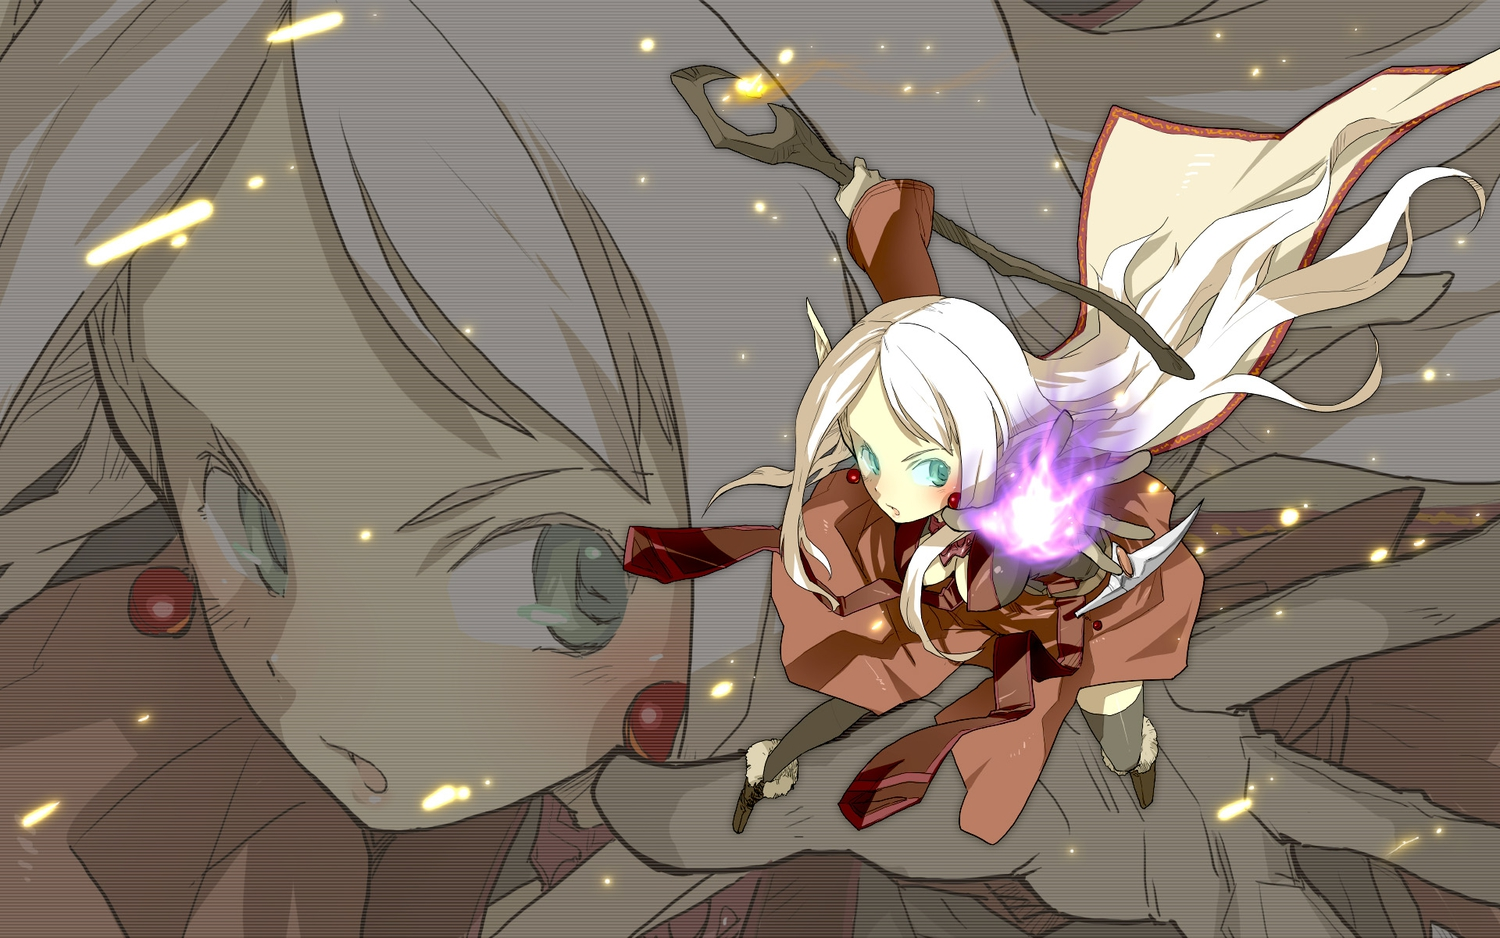 aqua_eyes blonde_hair long_hair magic miharu pointed_ears staff world_of_warcraft zoom_layer